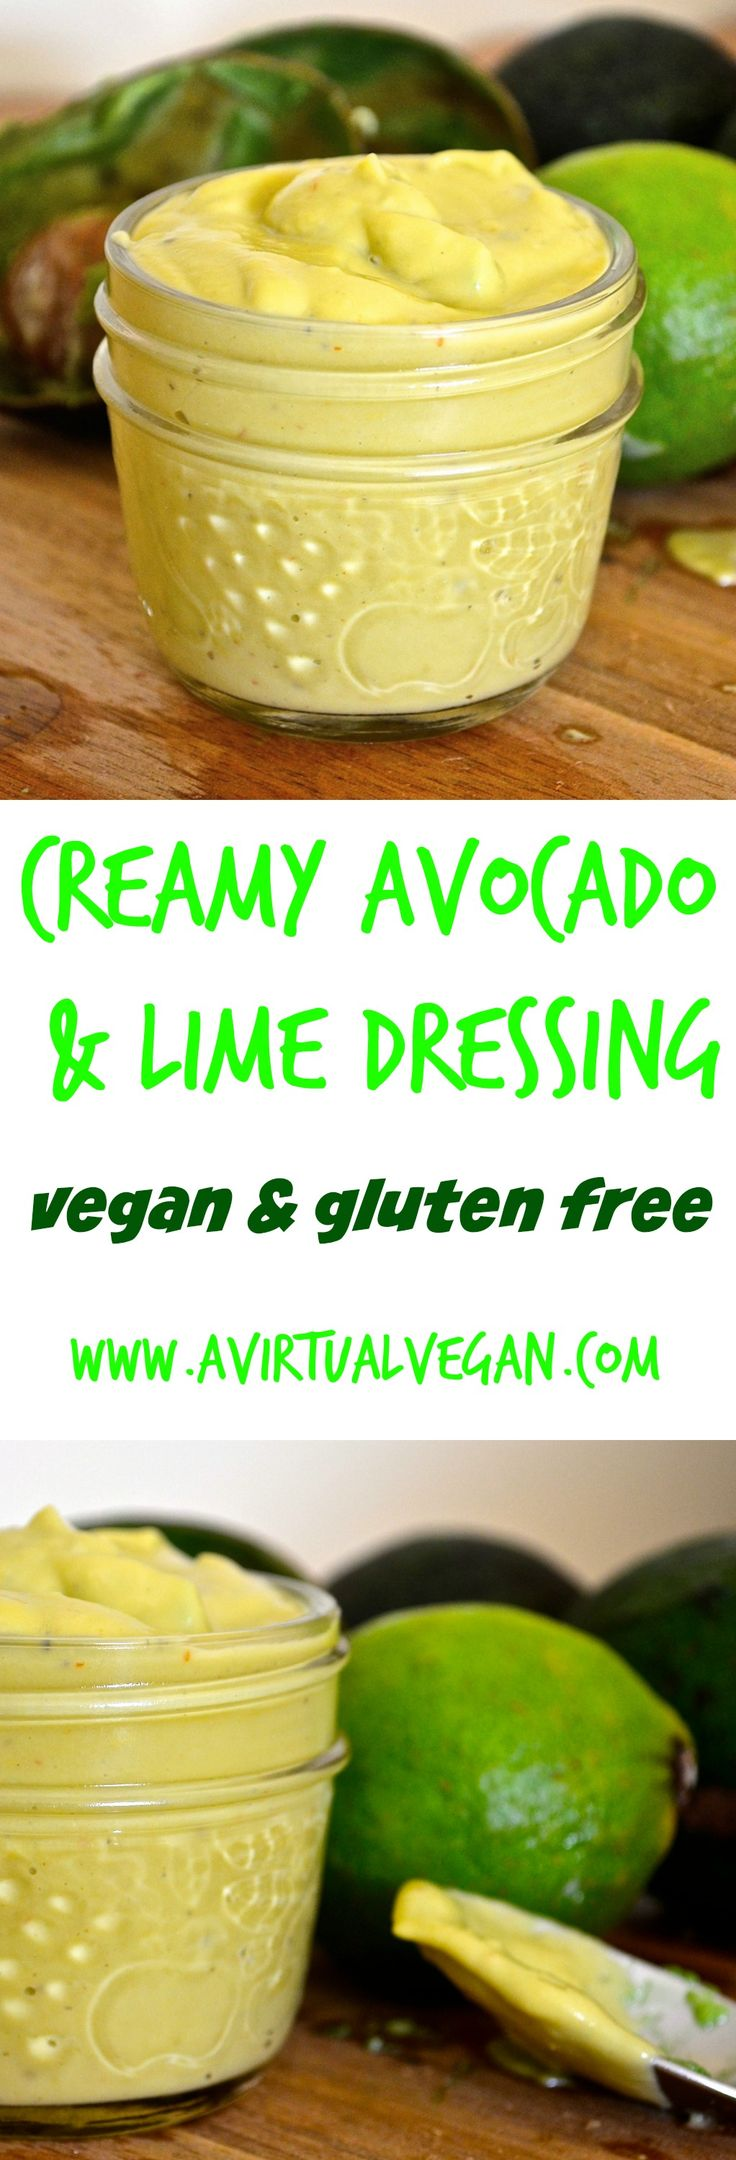 This Creamy Avocado & Lime Dressing is incredibly delicious and very versatile. It can be made as thick or thin as you like to suit whatever you are serving it with. Add some extra liquid to it and it becomes an amazing salad dressing or vinaigrette which coats and clings to the leaves perfectly, or reduce the liquid and it ends up thick like mayonnaise.